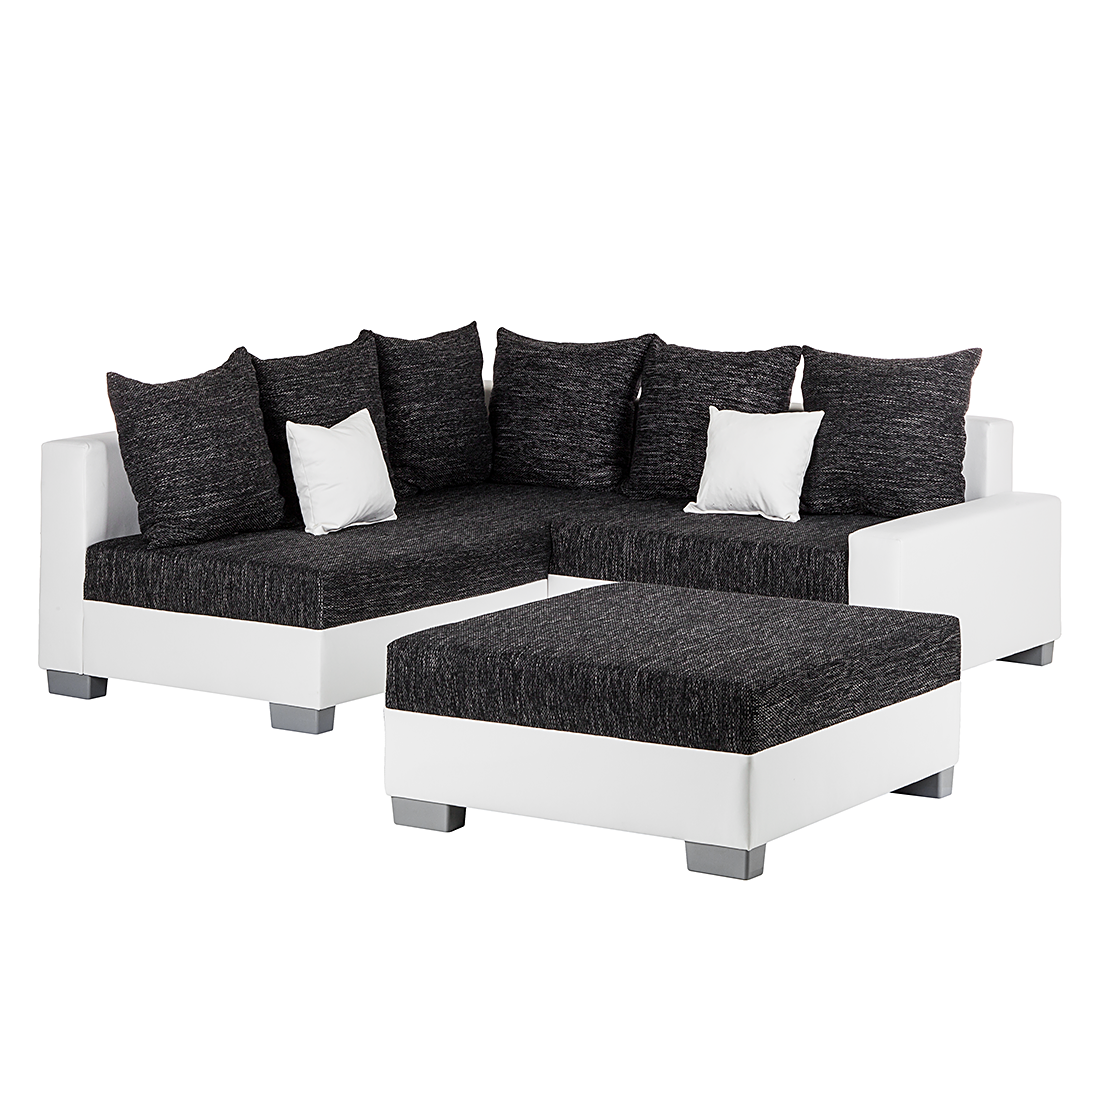 Ecksofa mit hocker schwarz wei ottomane links eckcouch for Couch mit hocker